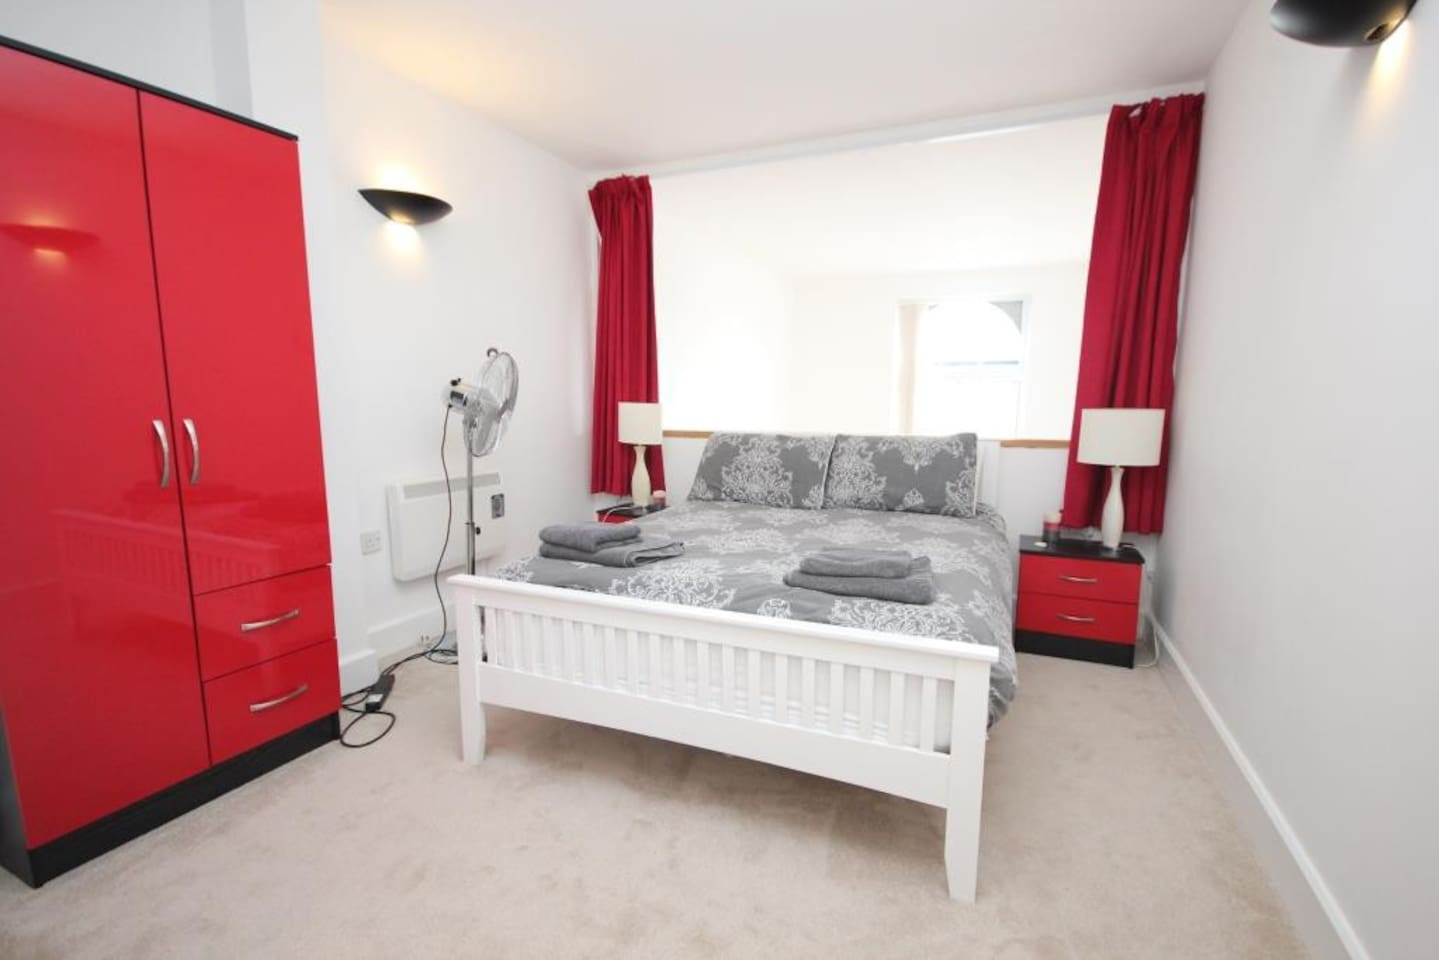 Modern 1 bed apartment in Norwich city centre - Apartments for Rent ...